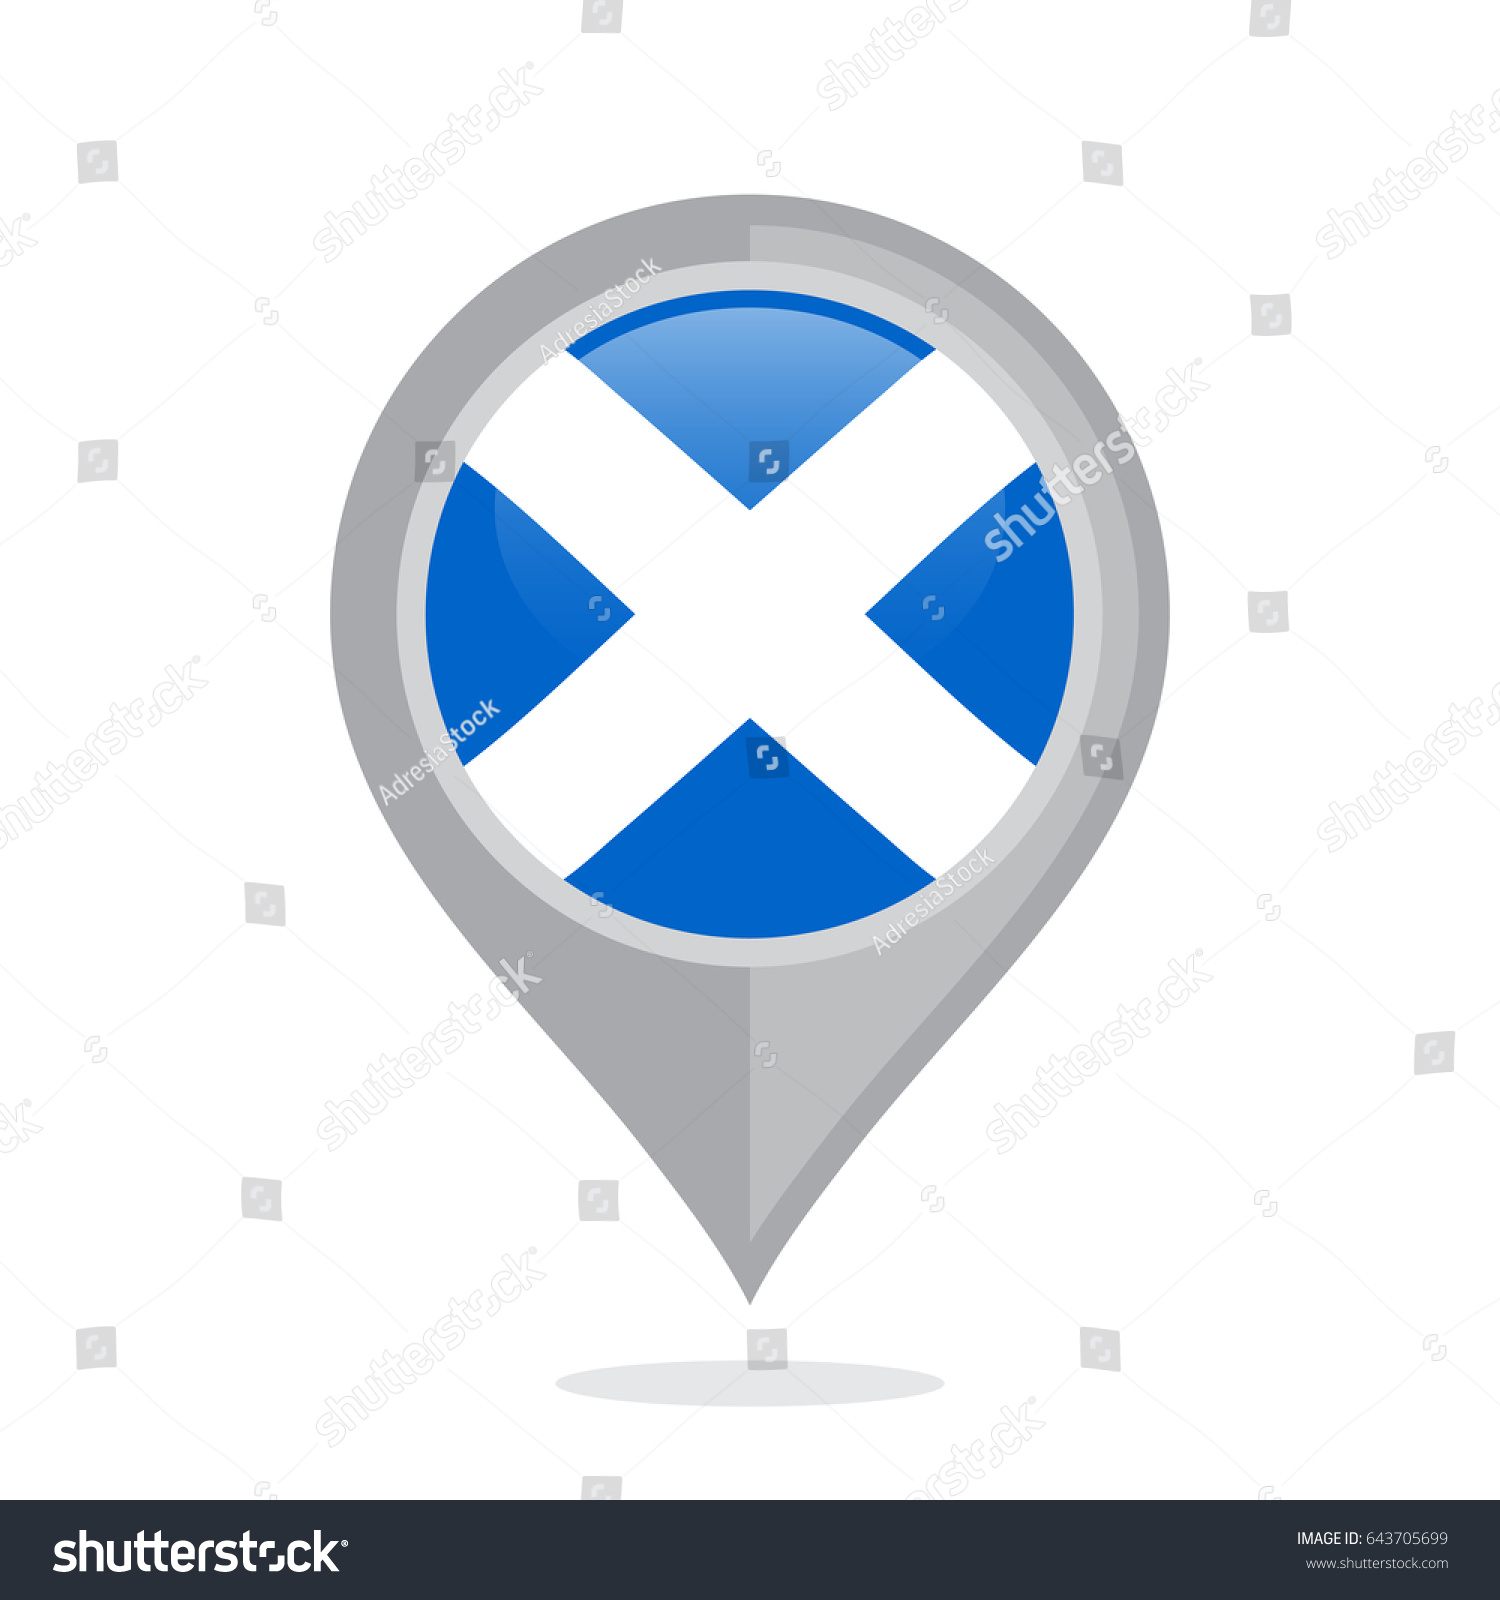 Icon pin illustration scottish country flag stock vector 643705699 icon pin illustration with scottish country flag stylized in the circle biocorpaavc Choice Image